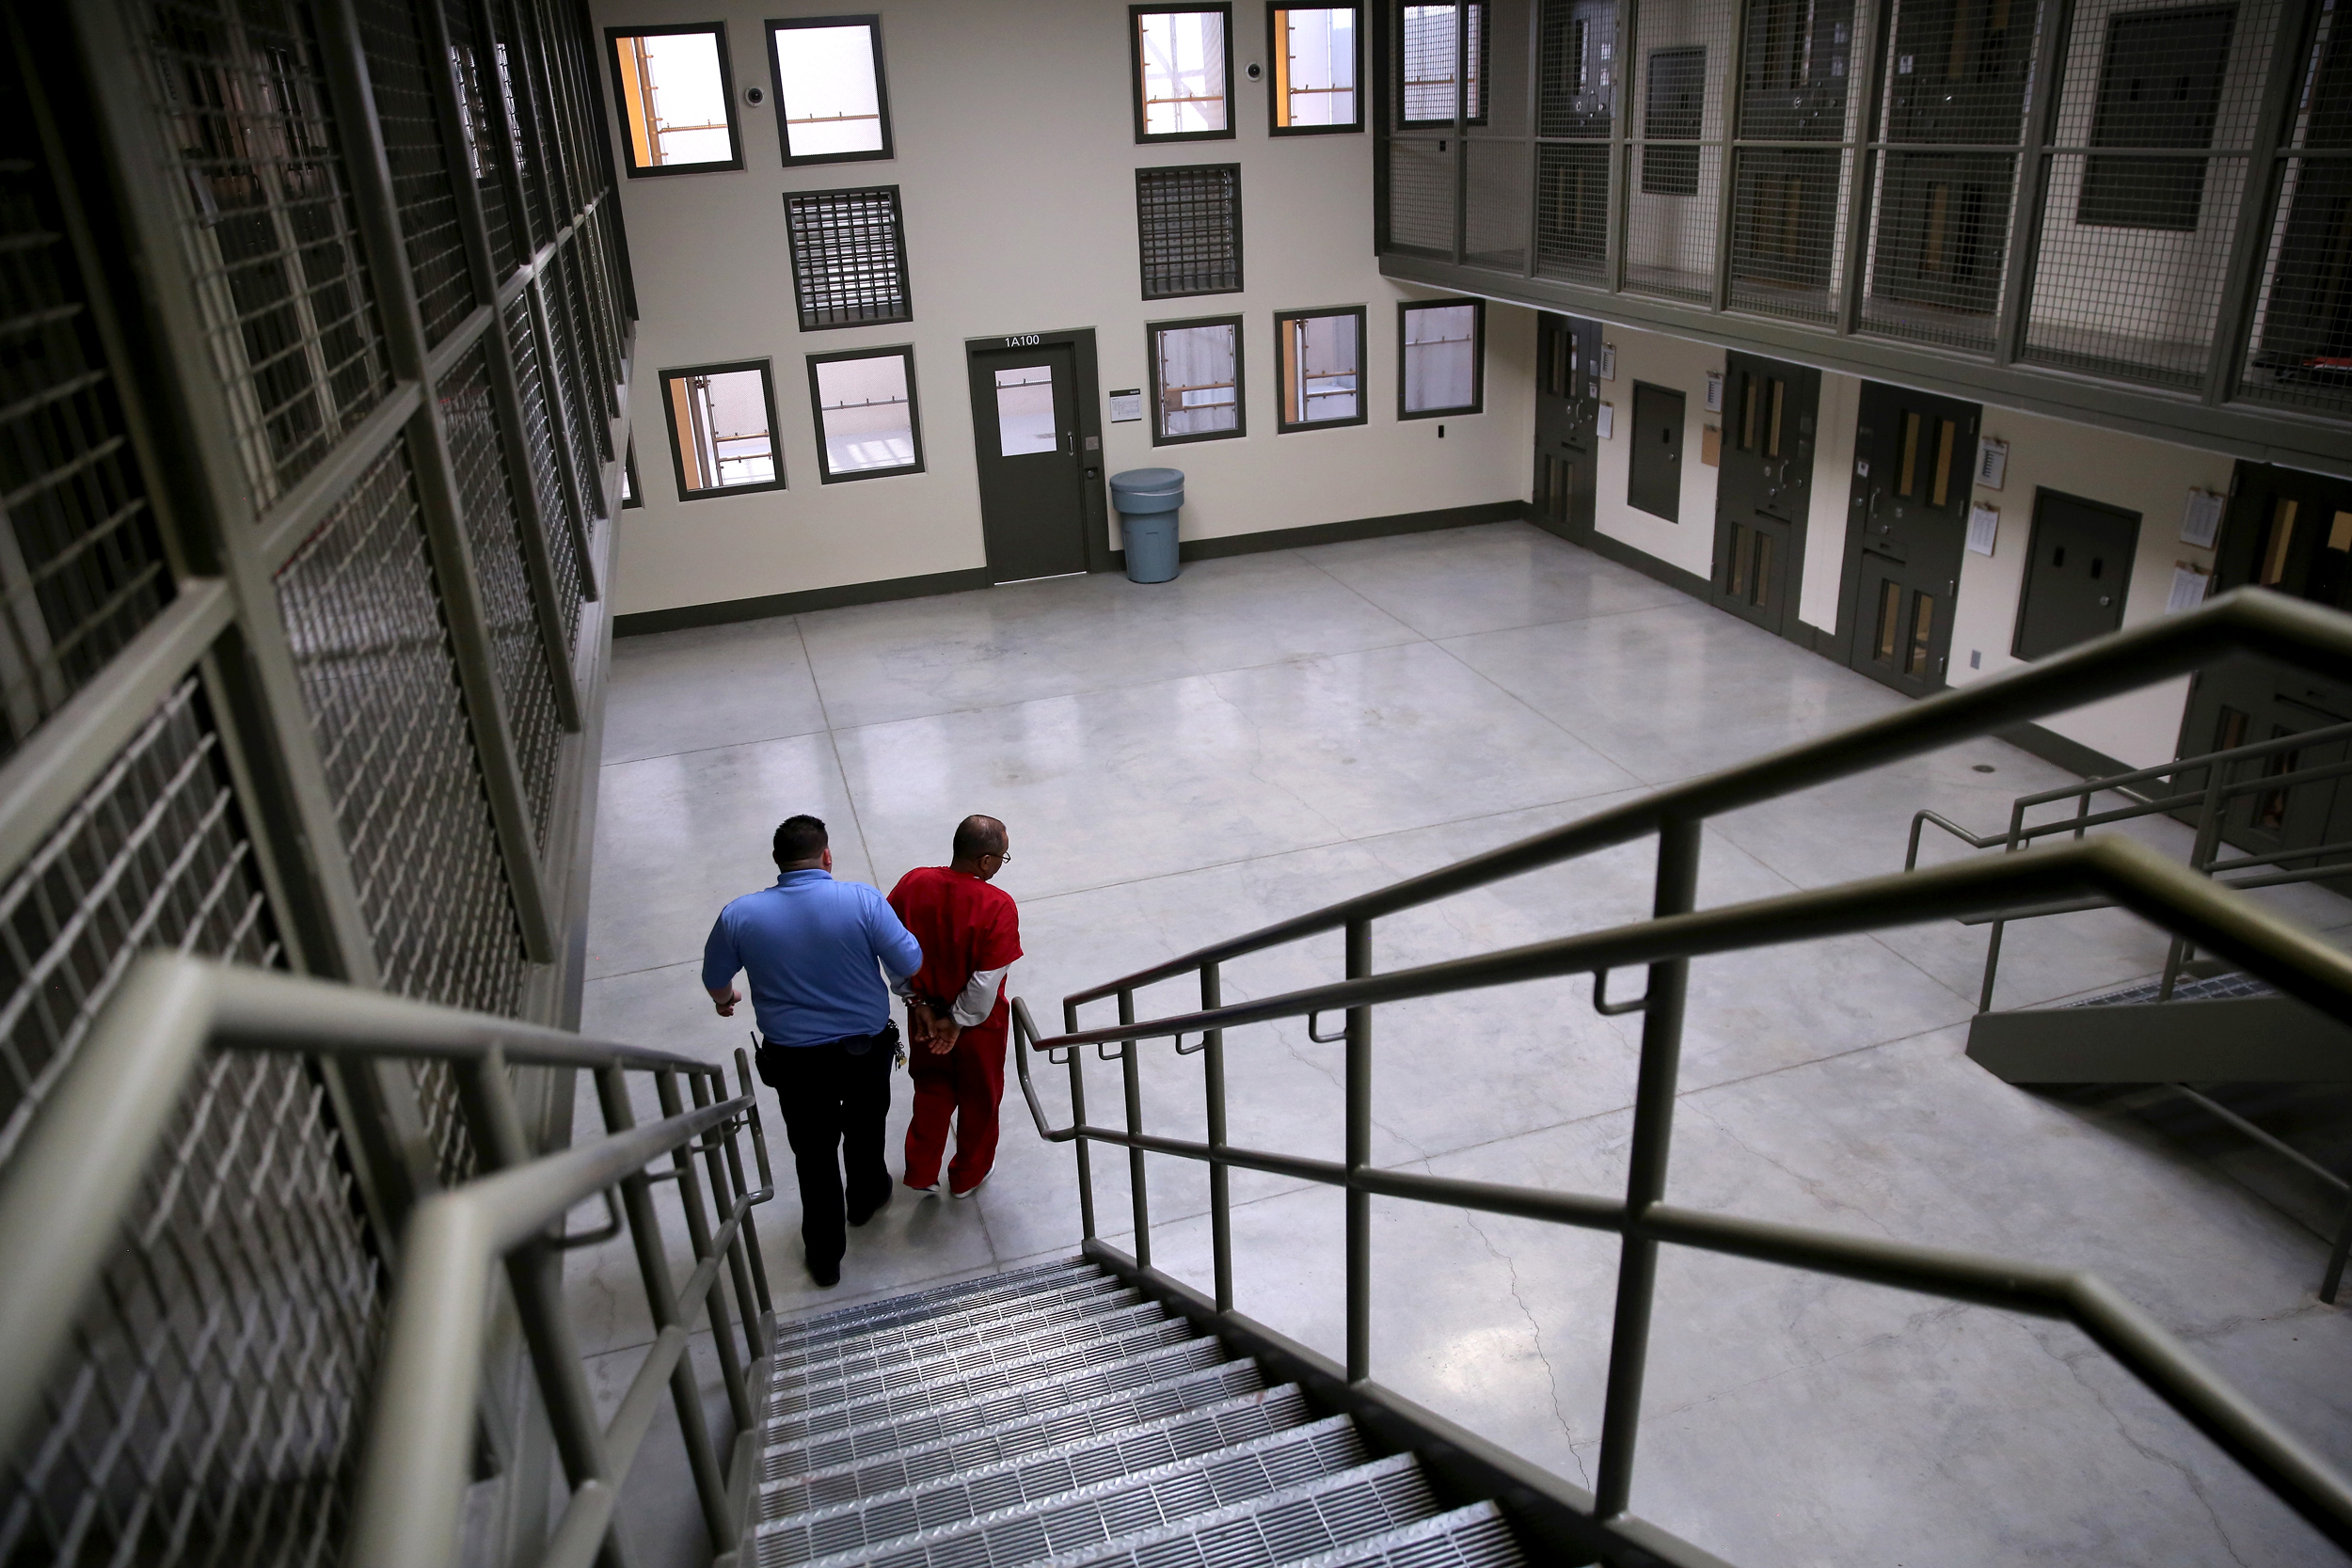 Thousands of immigrants suffer in solitary confinement in U S